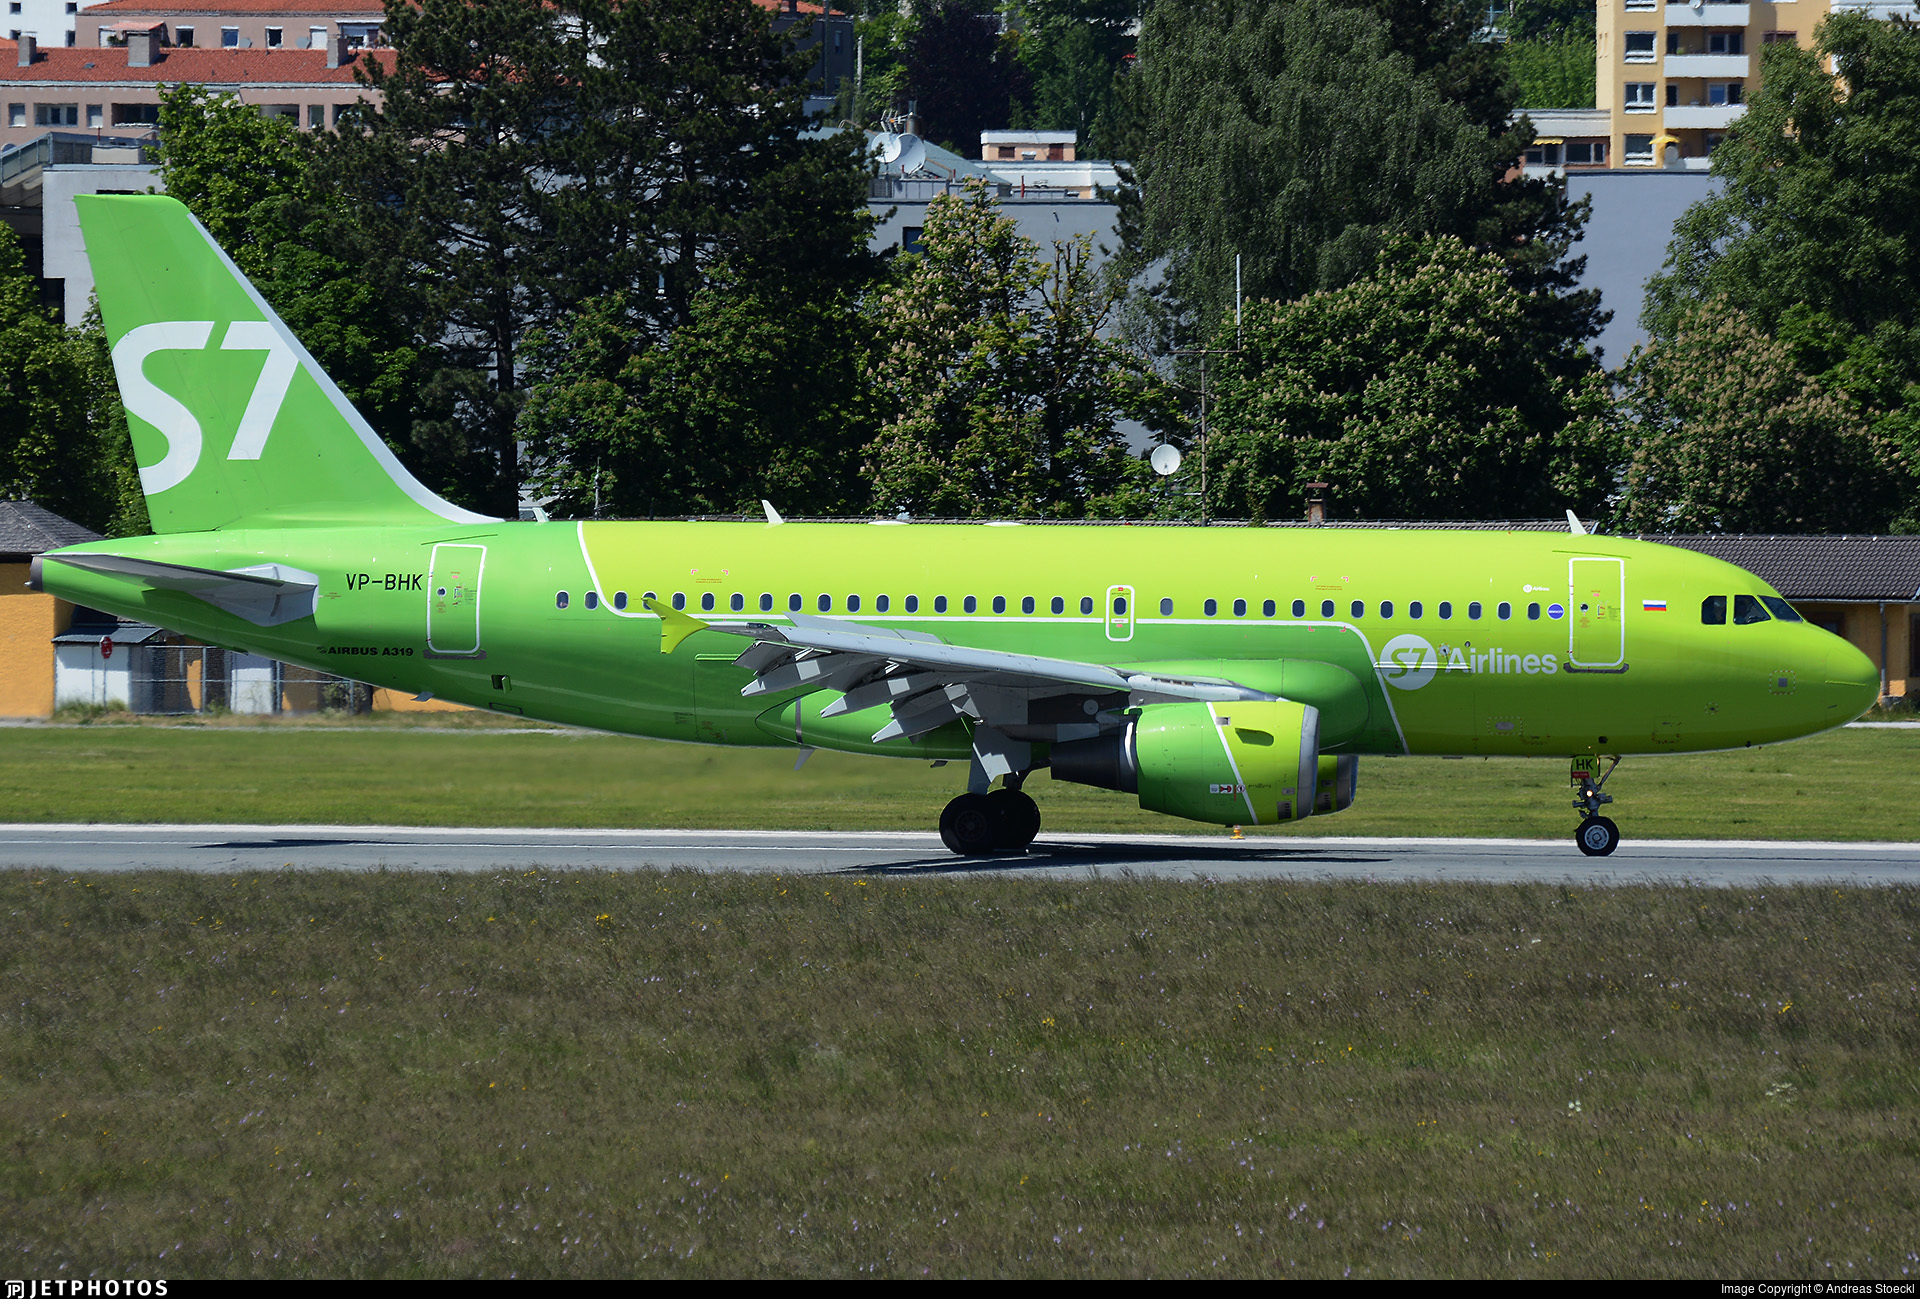 VP-BHK - Airbus A319-114 - S7 Airlines